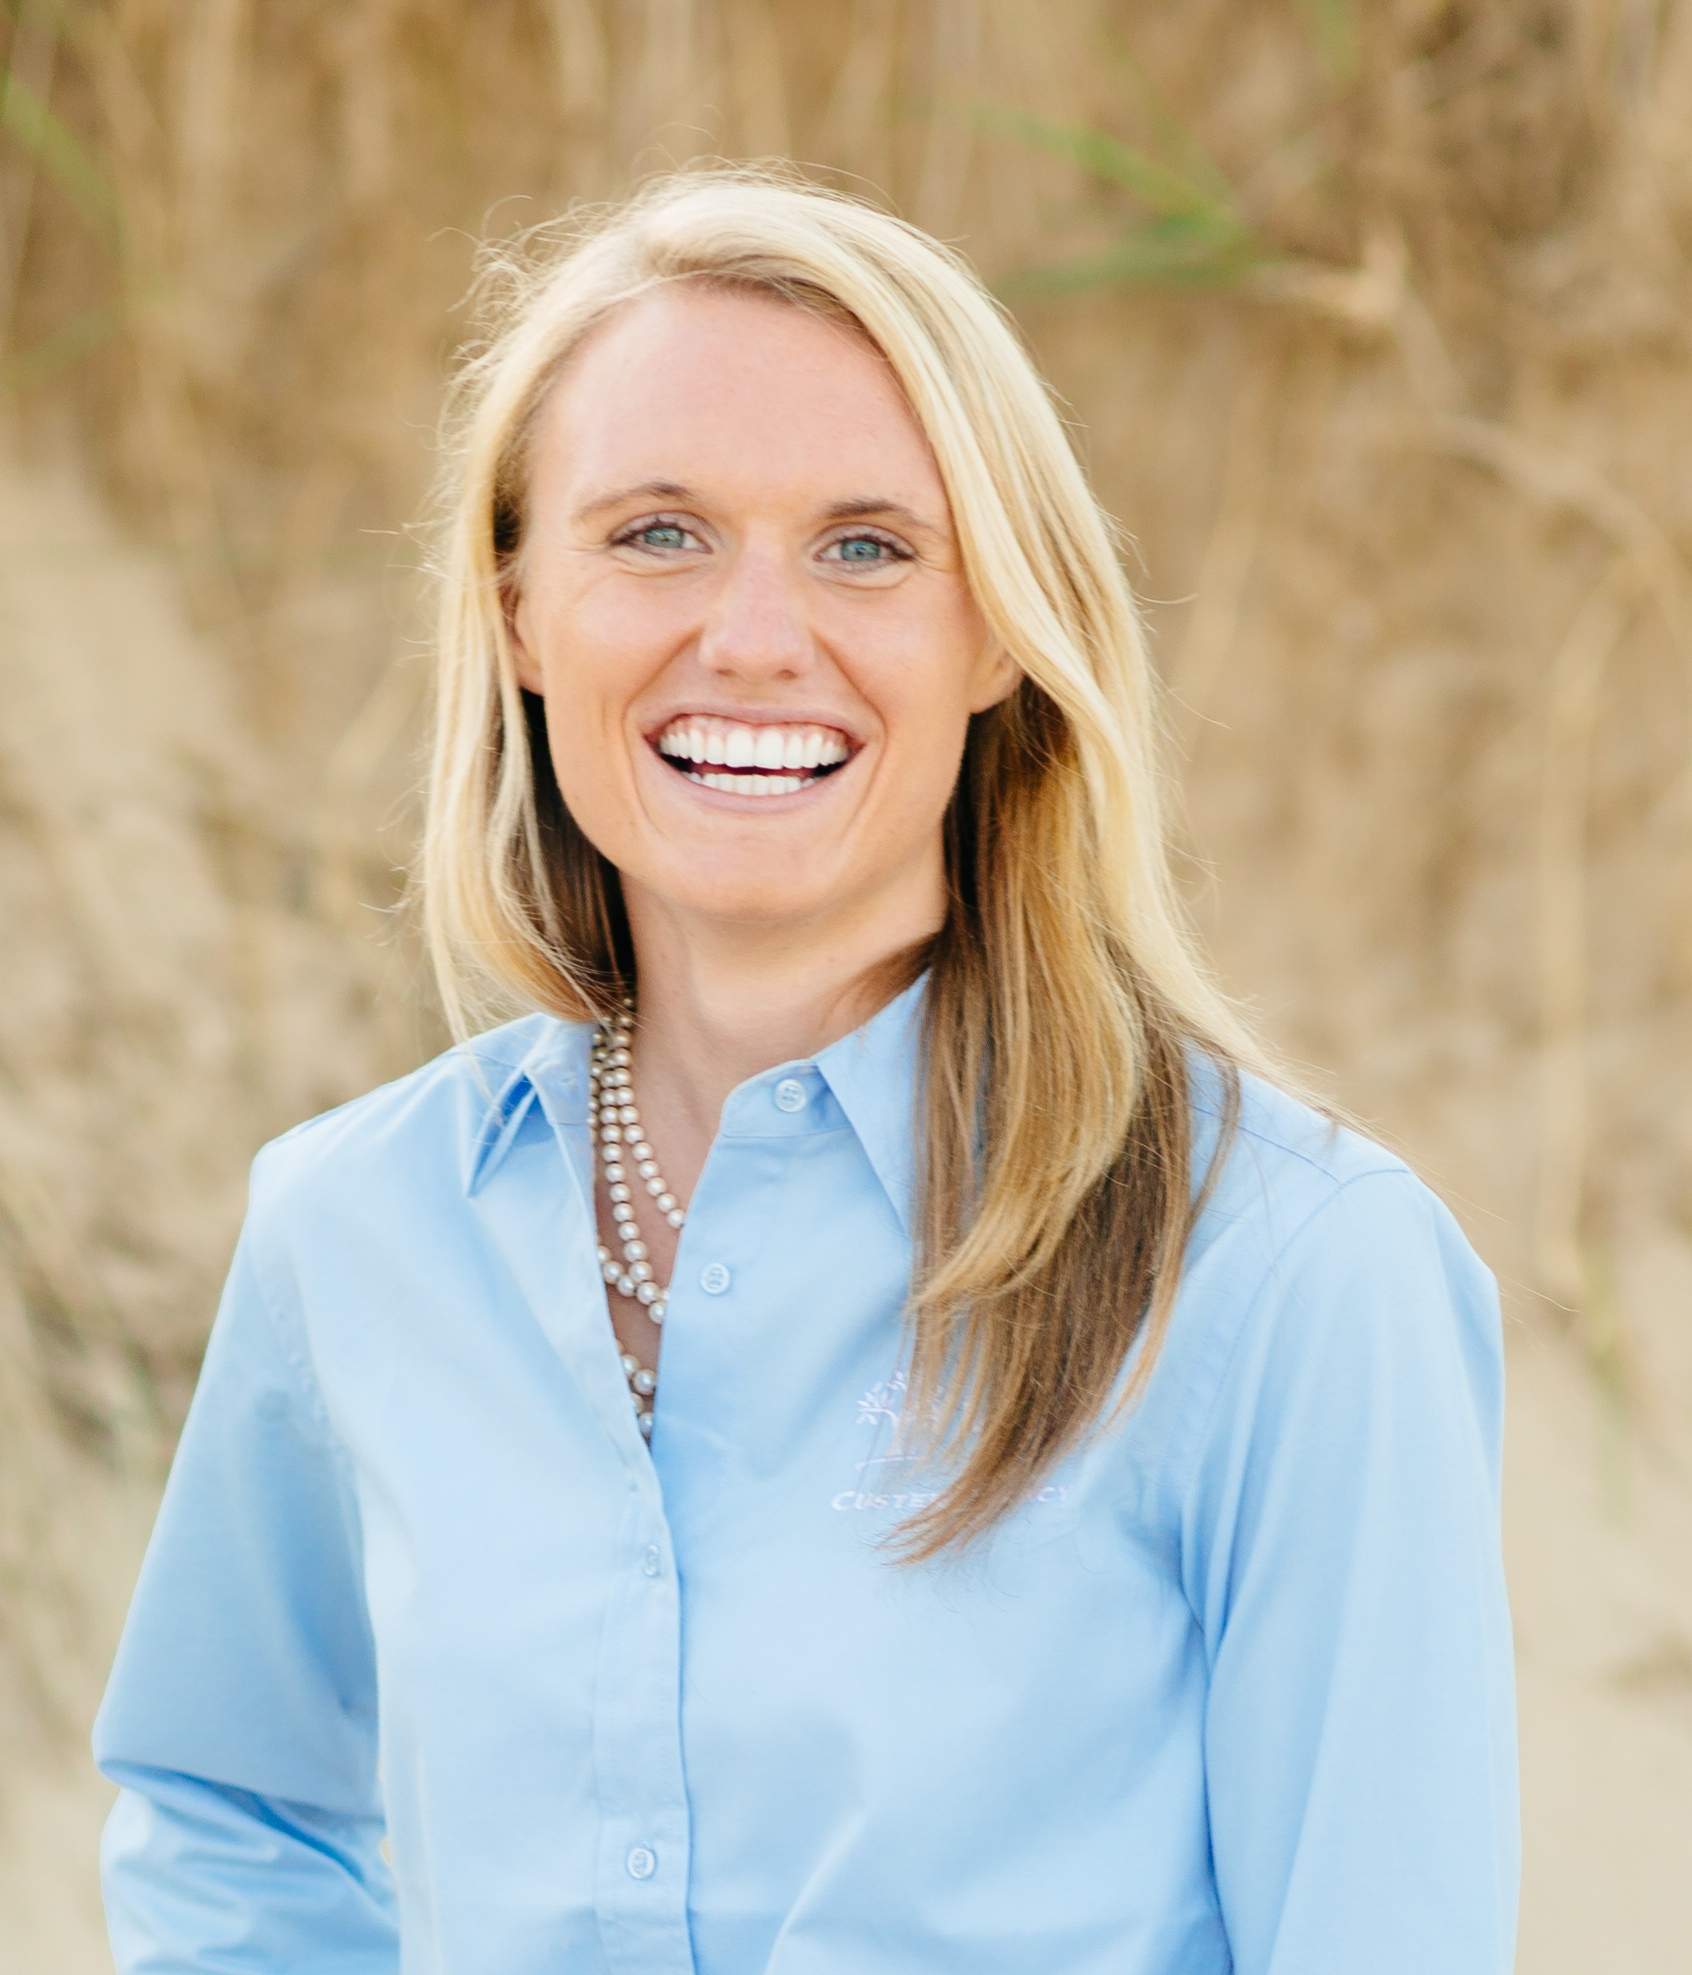 About the Author - Stephanie Vail is a member of the Custer Financial Advisors team. She's passionate about helping millennials with financial literacy and planning. To learn more about Stephanie and Custer Financial Advisors, visit www.CusterFinancialAdvisors.Com or email Stephanie at SVail@lpl.com.